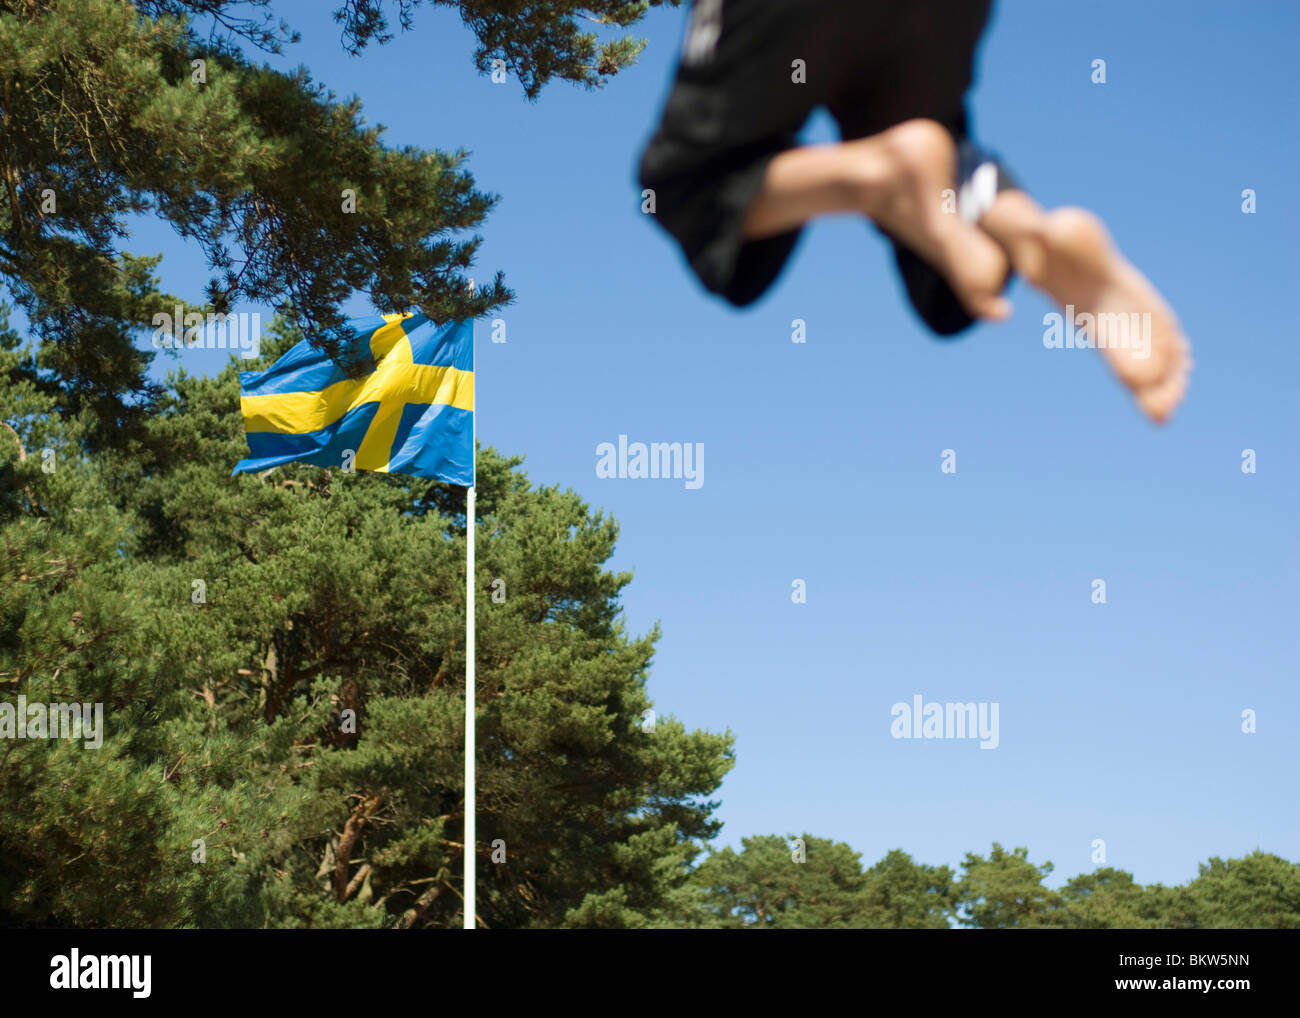 Swedish flag and a jumping child - Stock Image